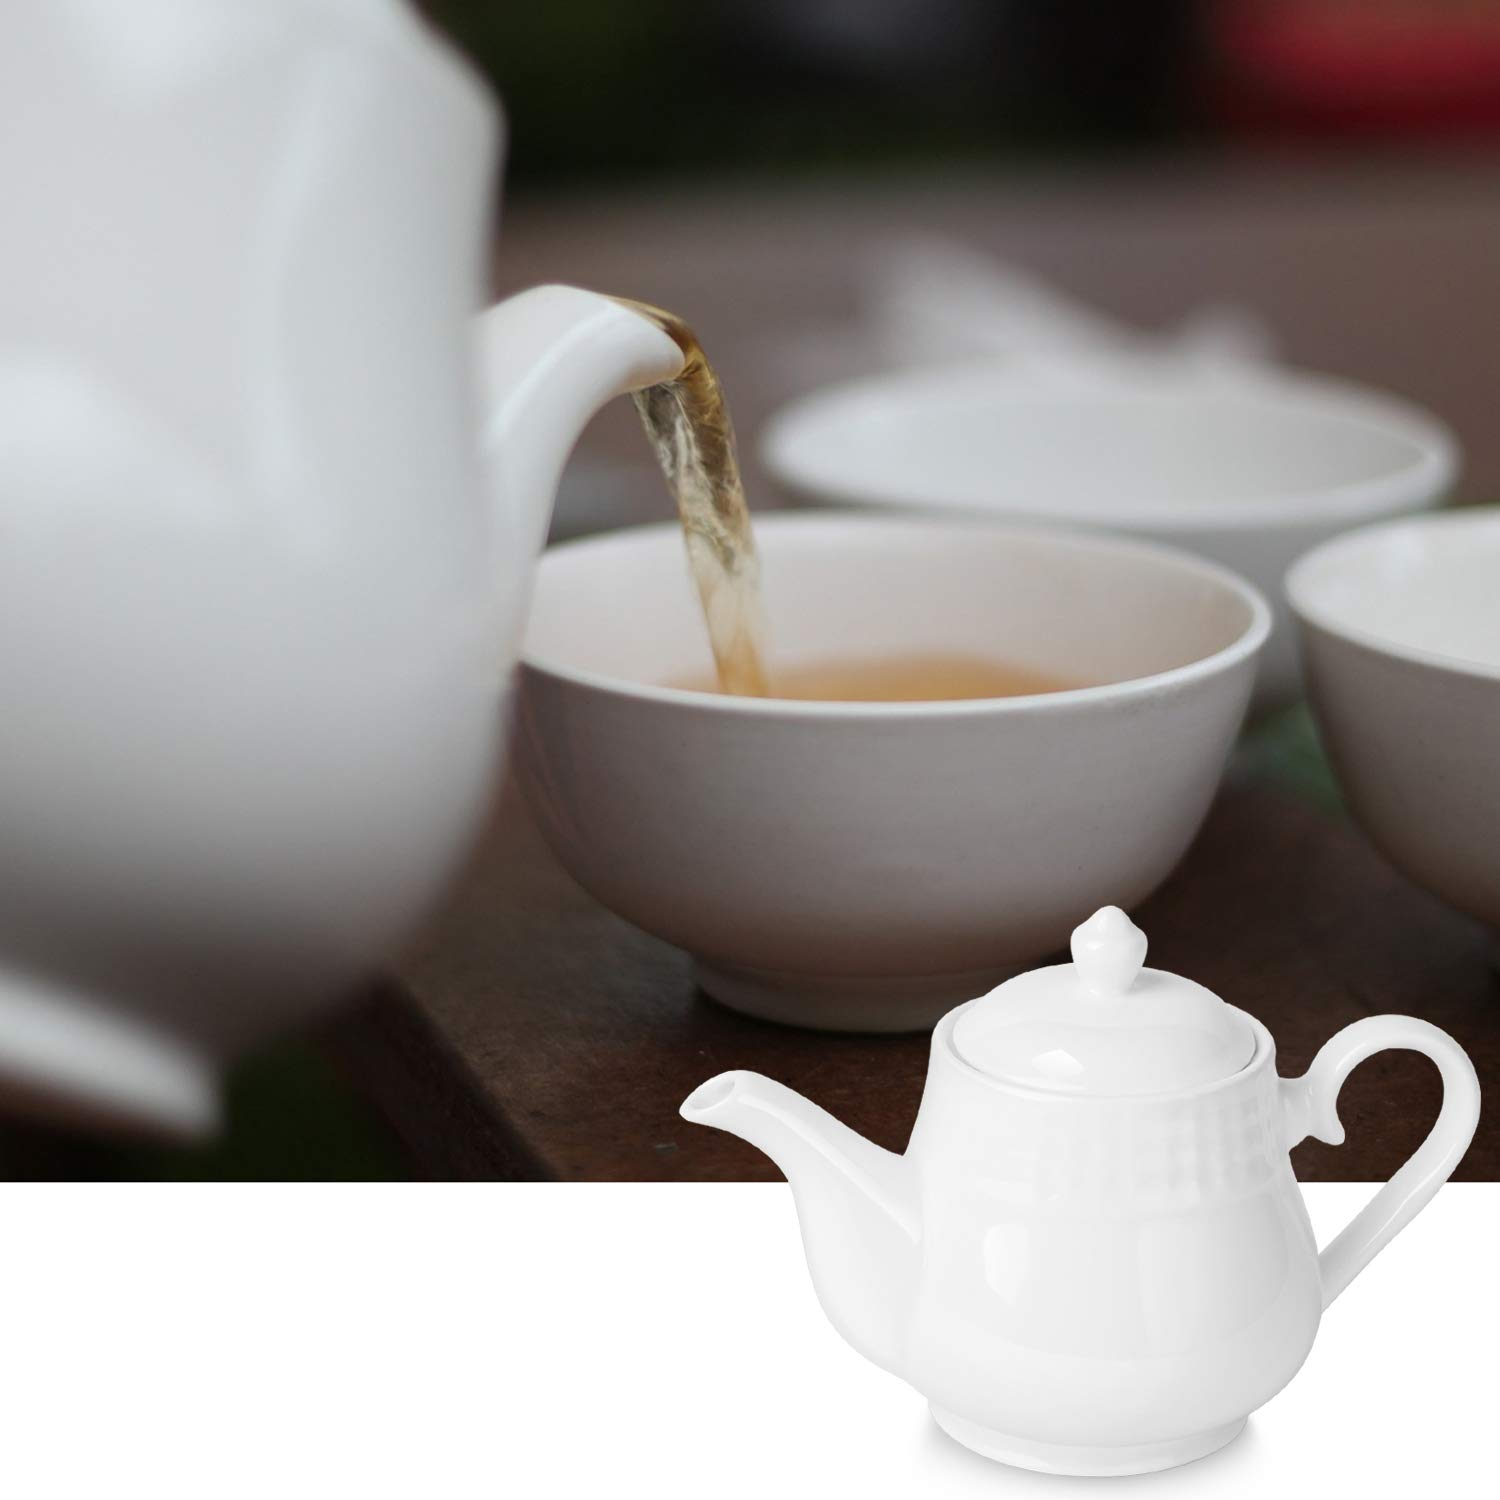 Beverage Serveware Set for 2-3 Tea Cups Flexzion Porcelain Teapot Coffee Mugs 24 Ounce Modern English Classic Style Microwave Oven /& Dishwasher Safe Pure White Ceramic Tea Pot w//Removable Lid